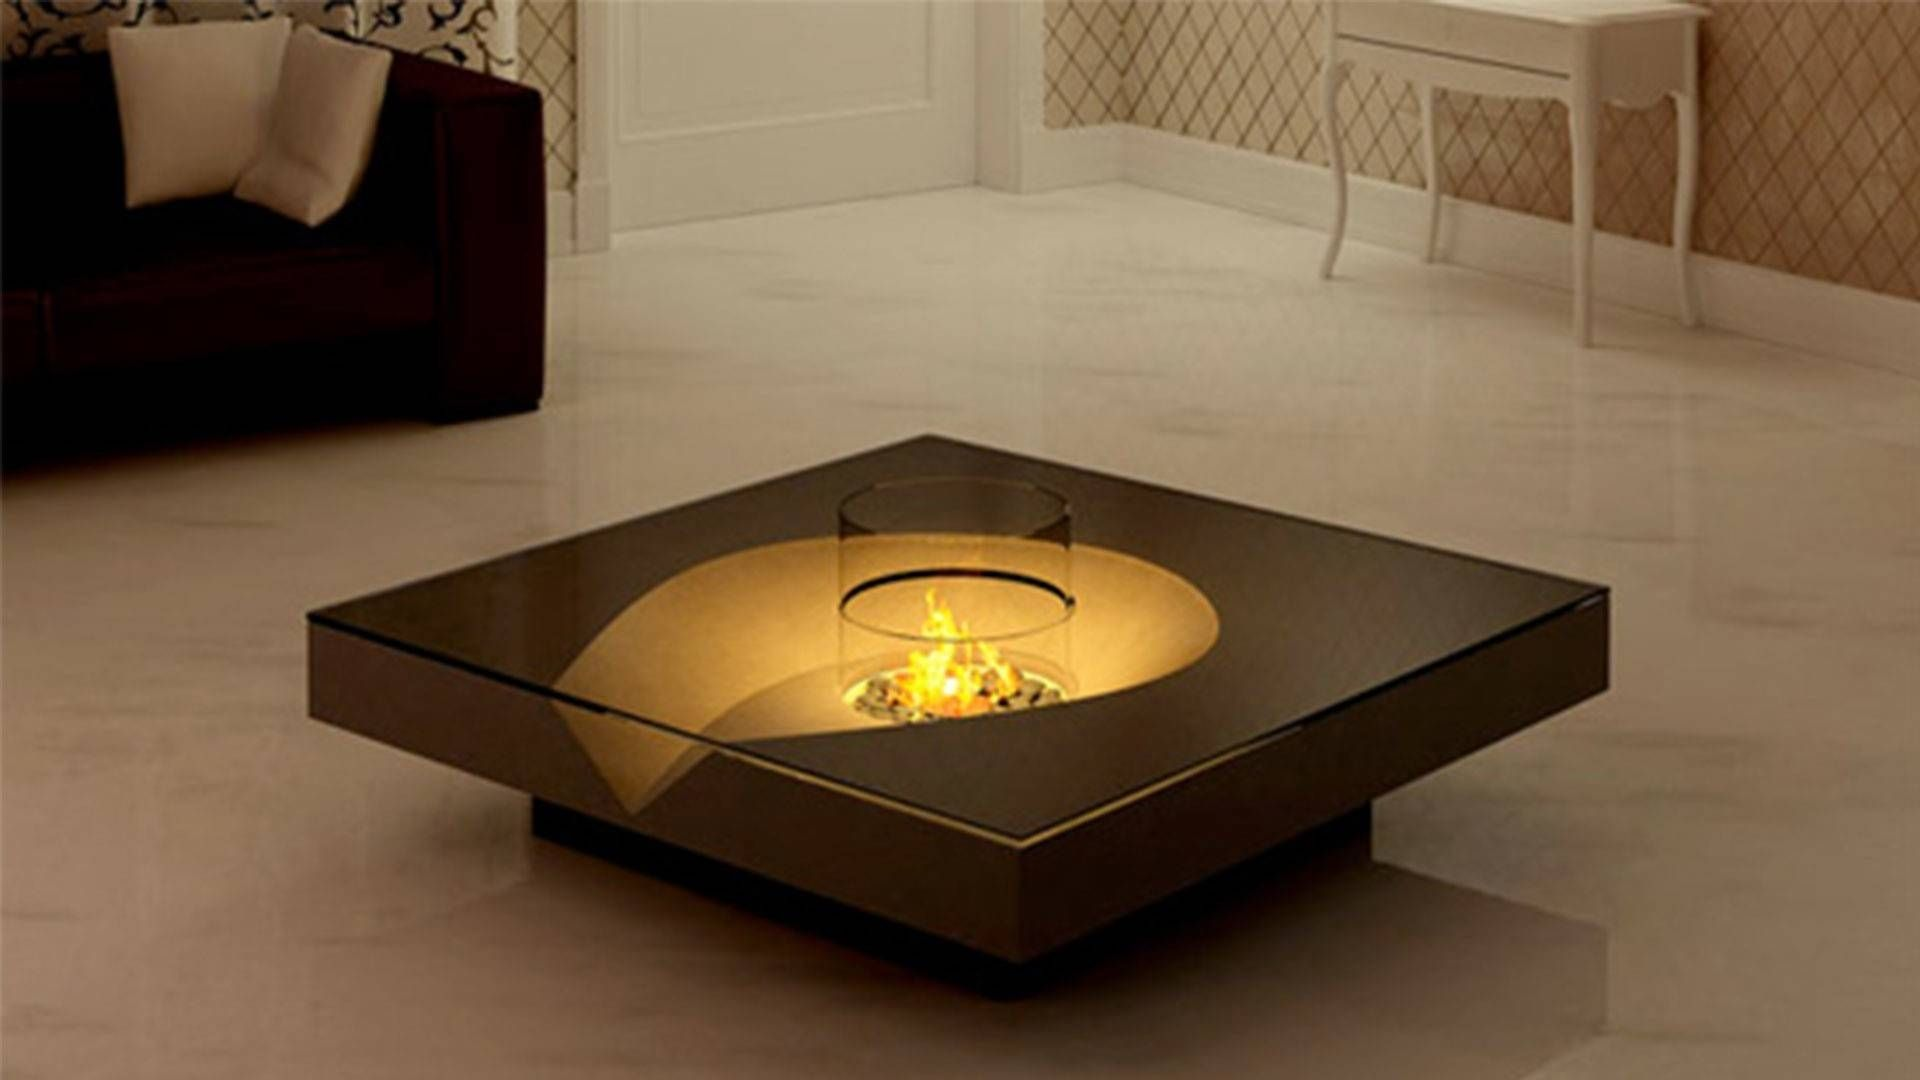 Large Contemporary Coffee Tables Contemporary Coffee Table Coffee Table Design Cool Coffee Tables [ 1080 x 1920 Pixel ]